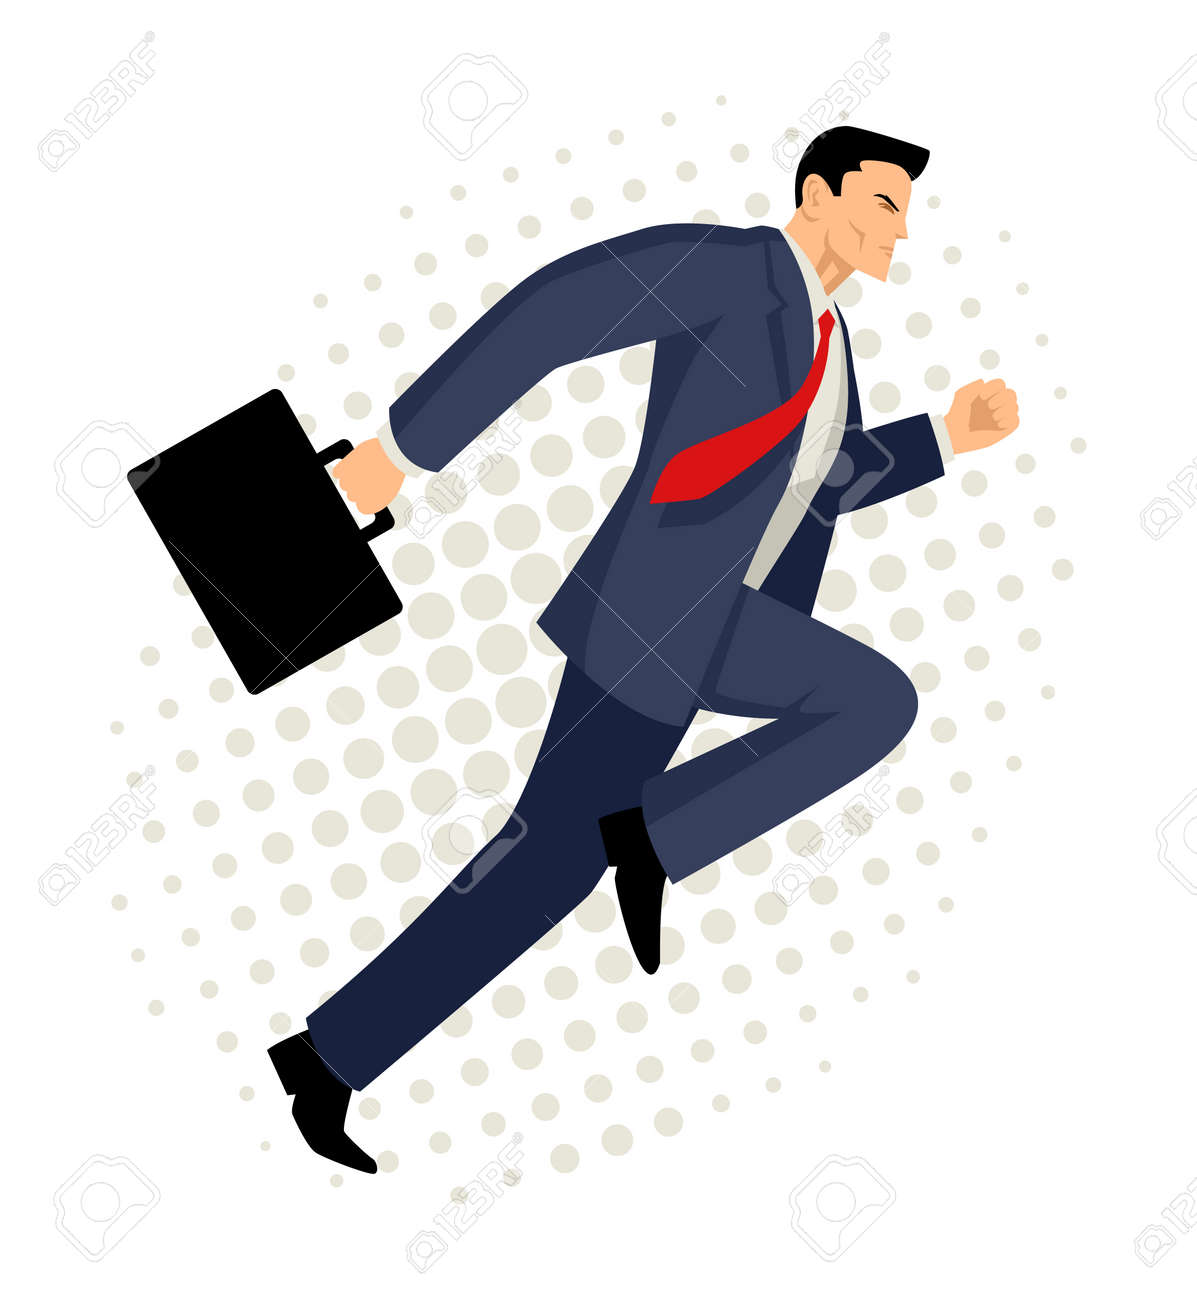 Cartoon illustration of a businessman running with briefcase, business, energetic, dynamic concept - 58217067